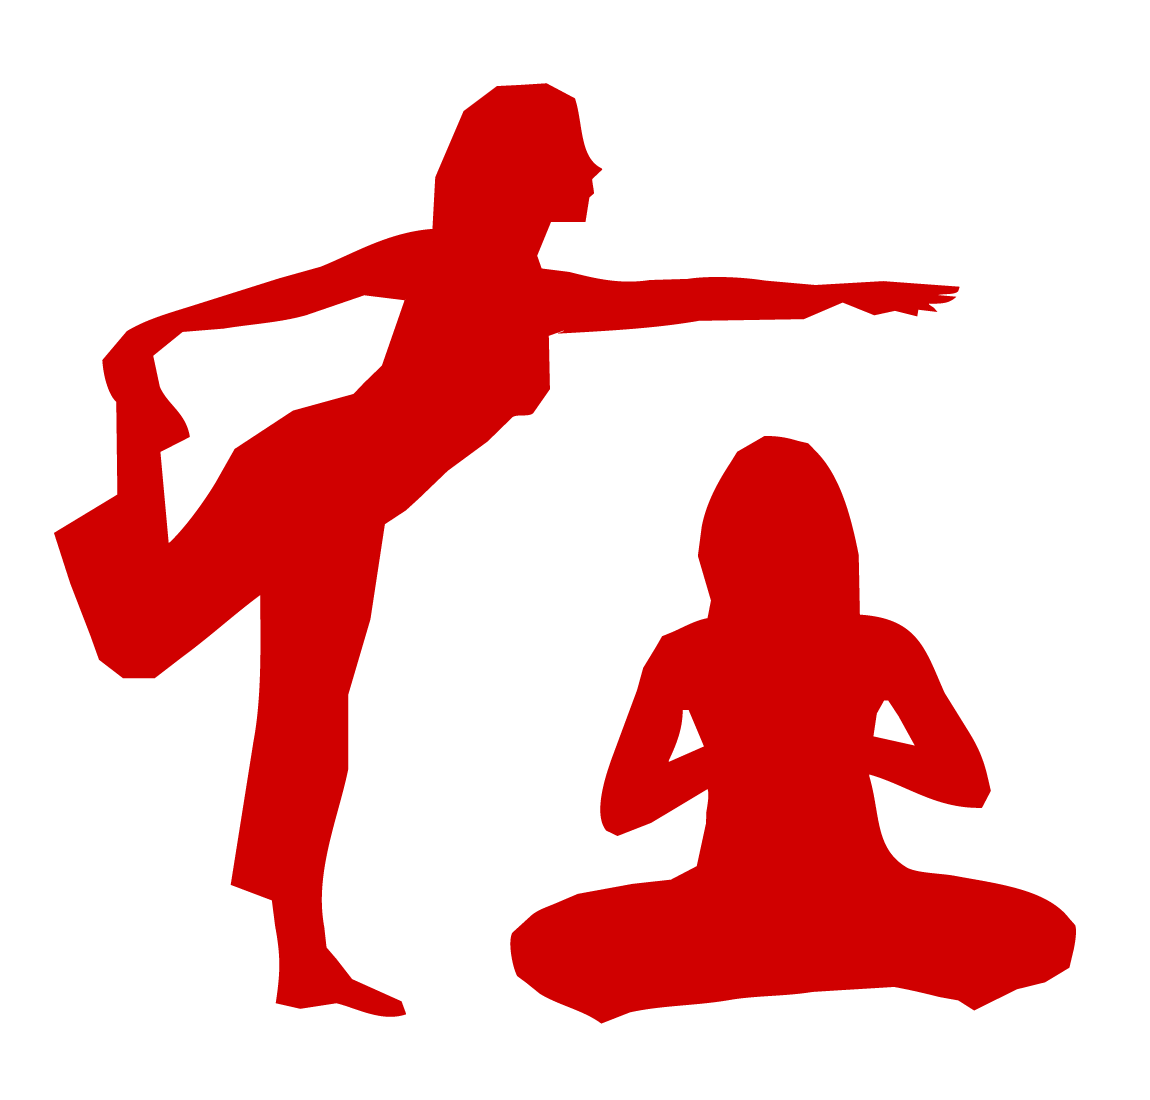 Two-person Yoga Icon